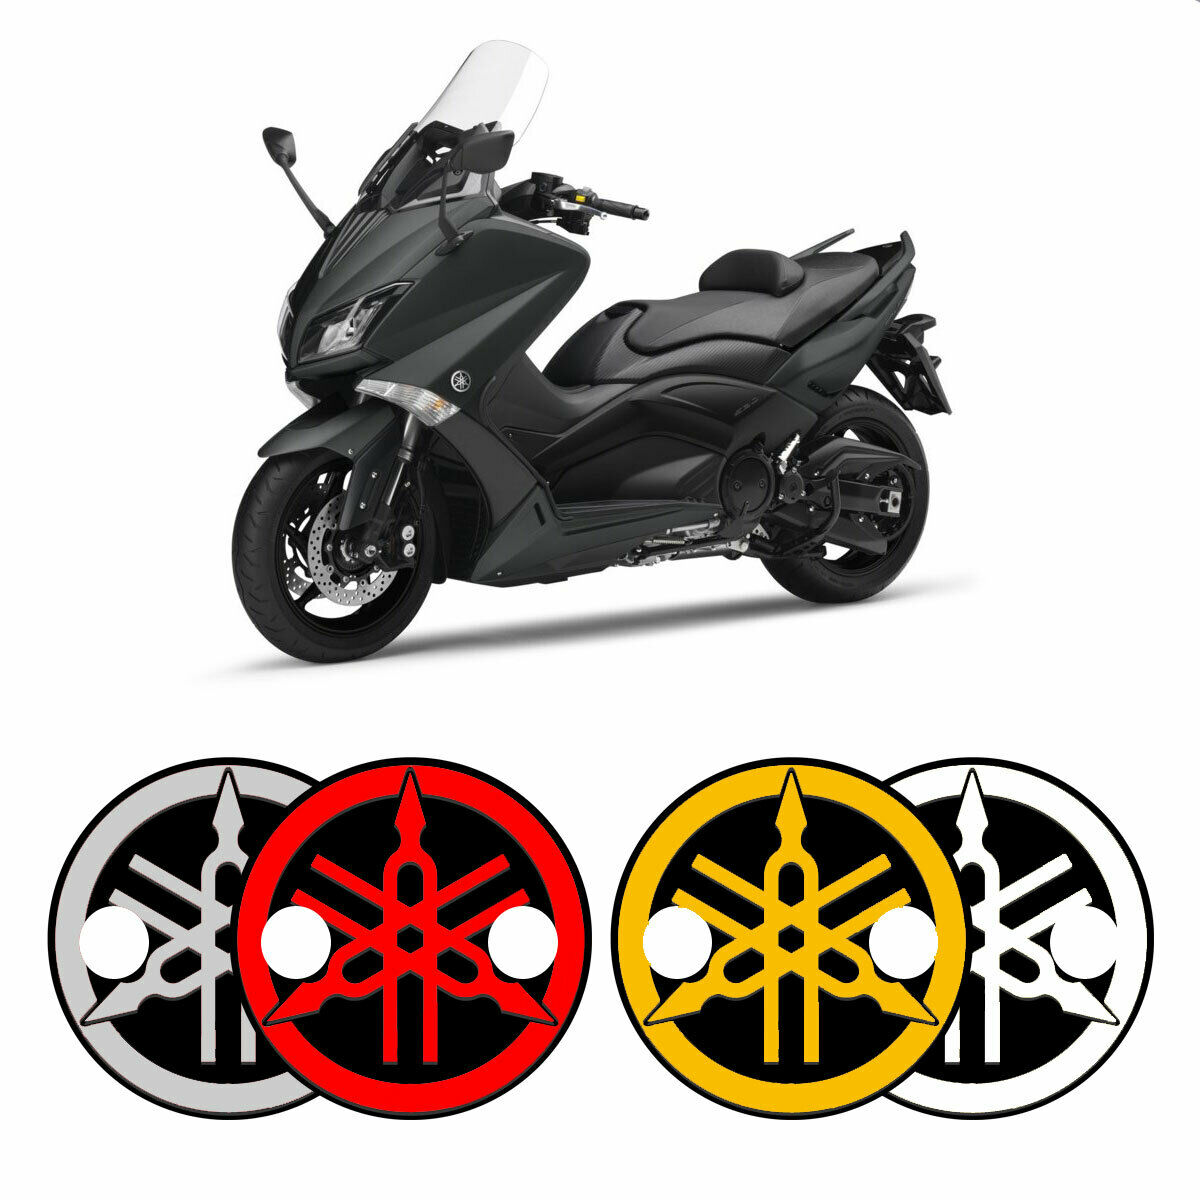 Kit 2 ADESIVI in RESINA 3D per PROTEZIONE CARTER TMAX 500 VARIATORE YAMAHA T MAX